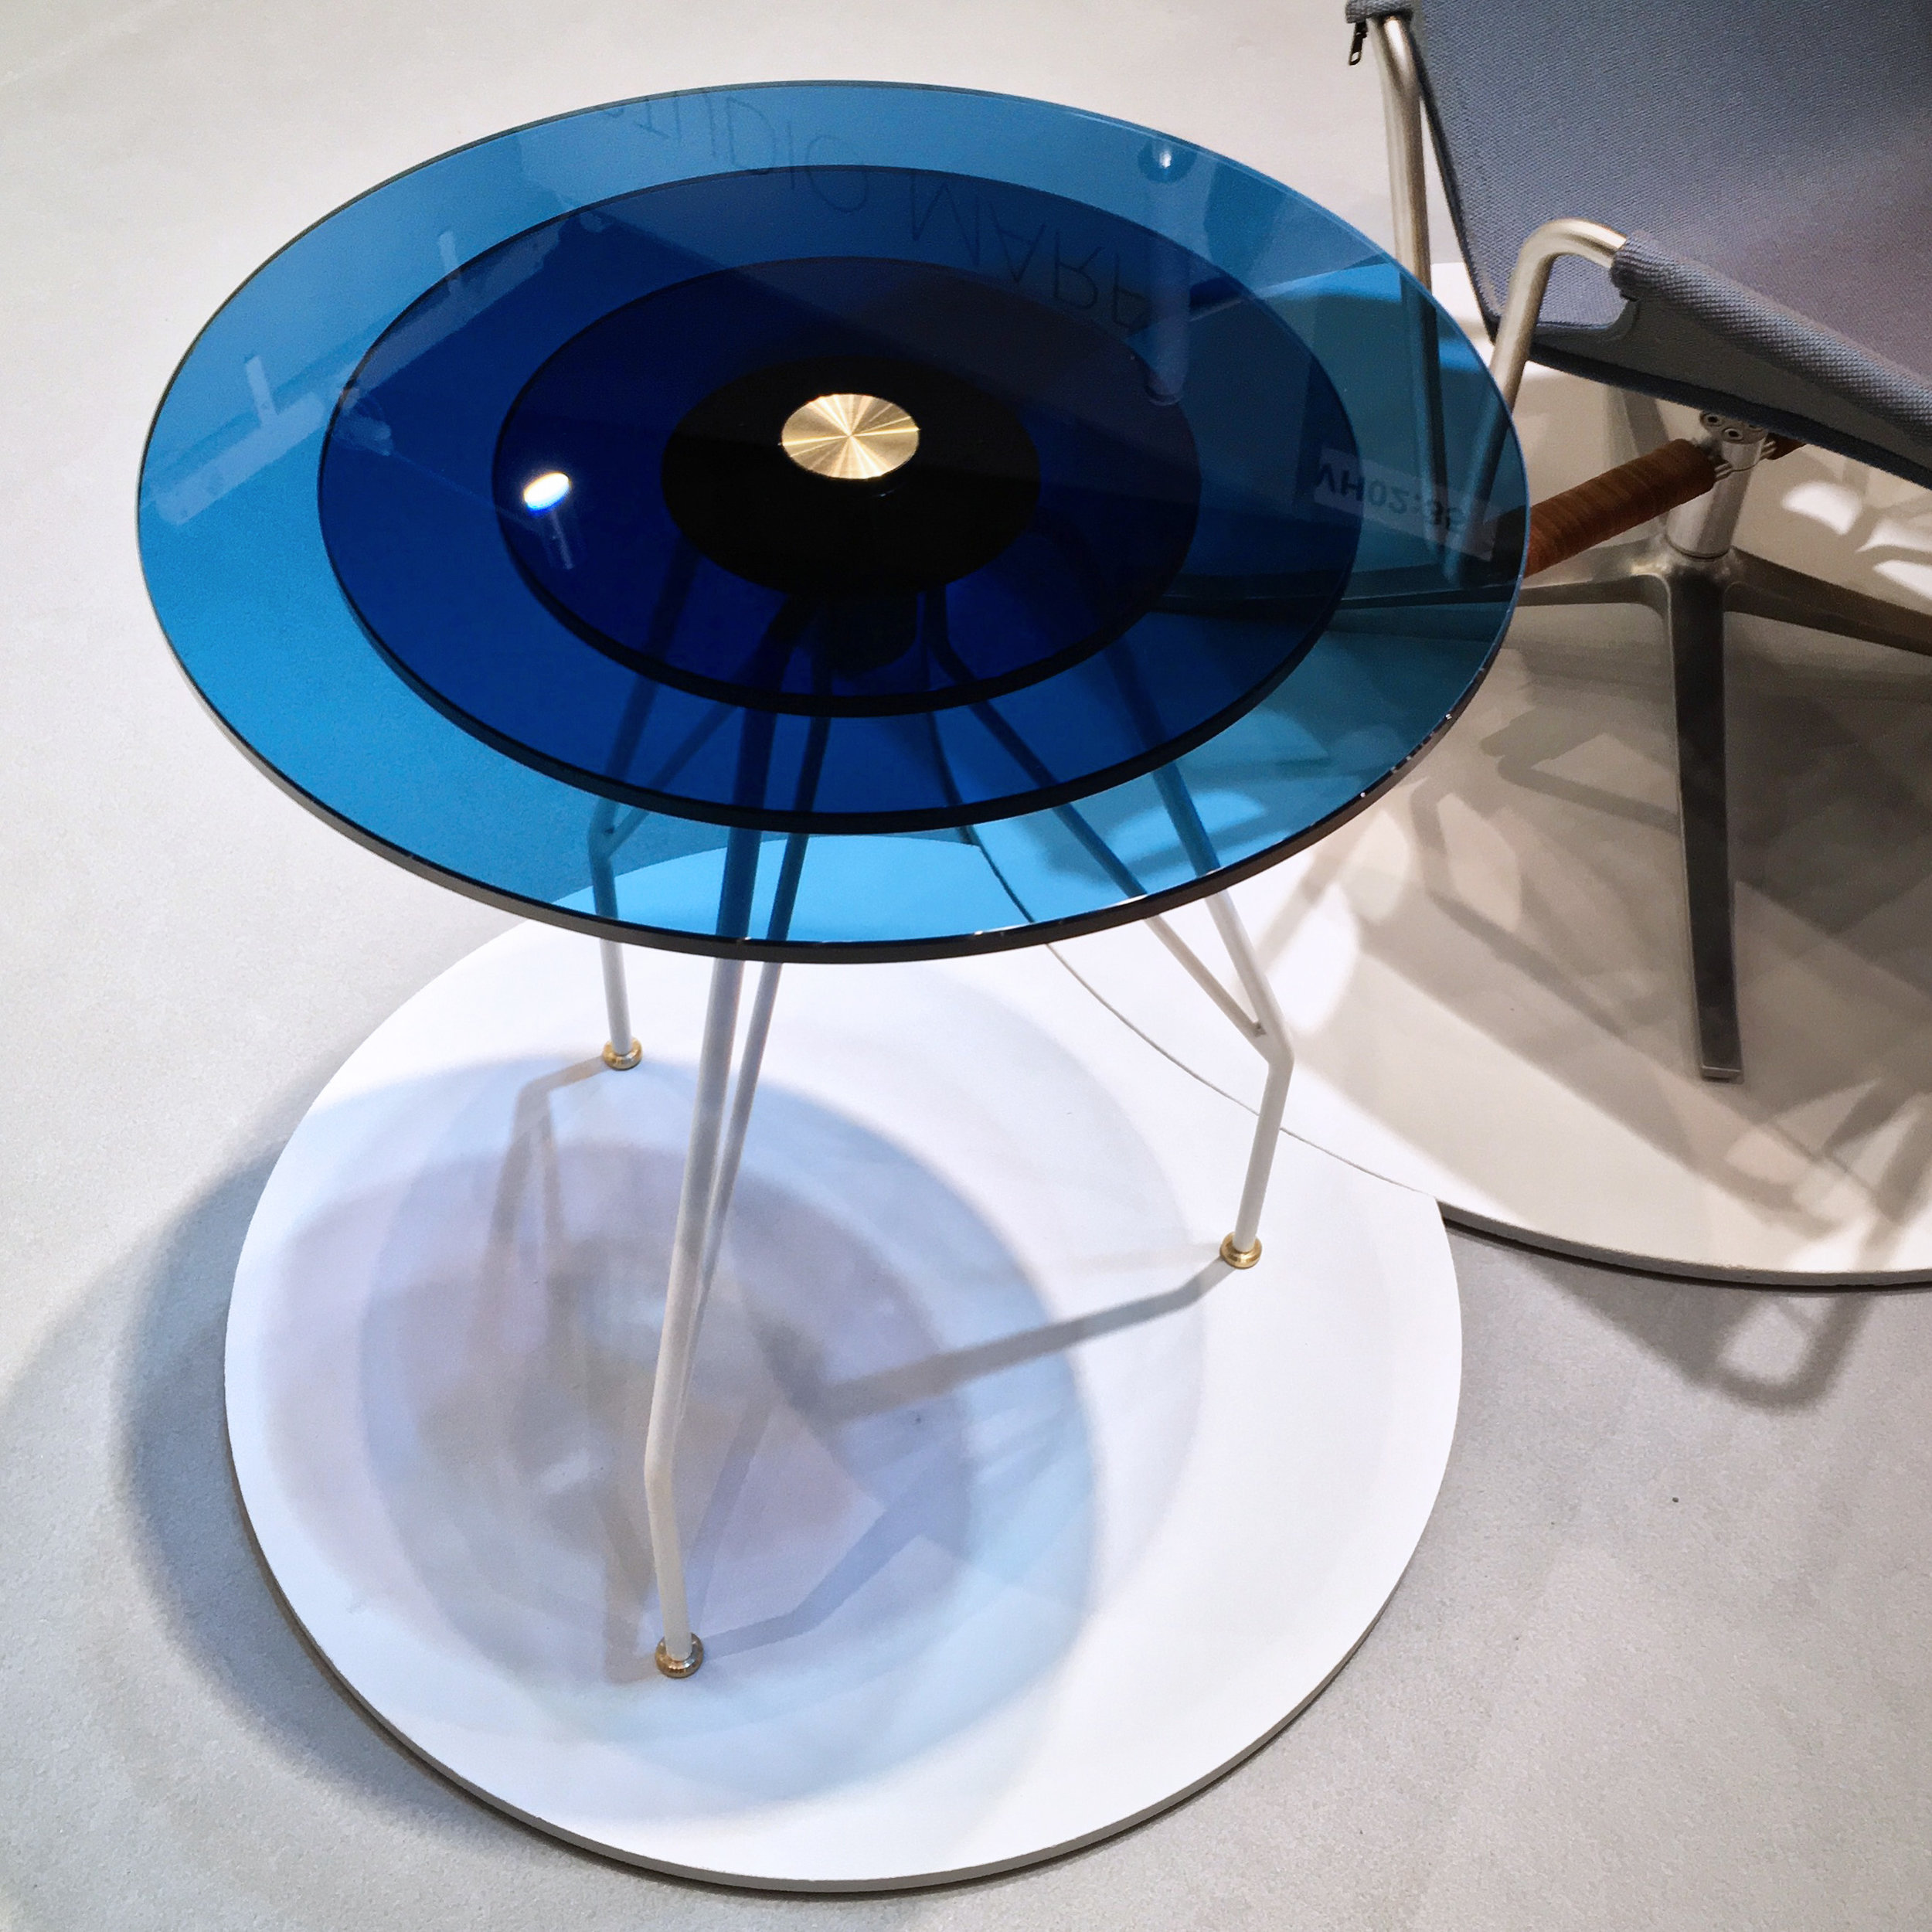 The blue LUNAR table at our Stand